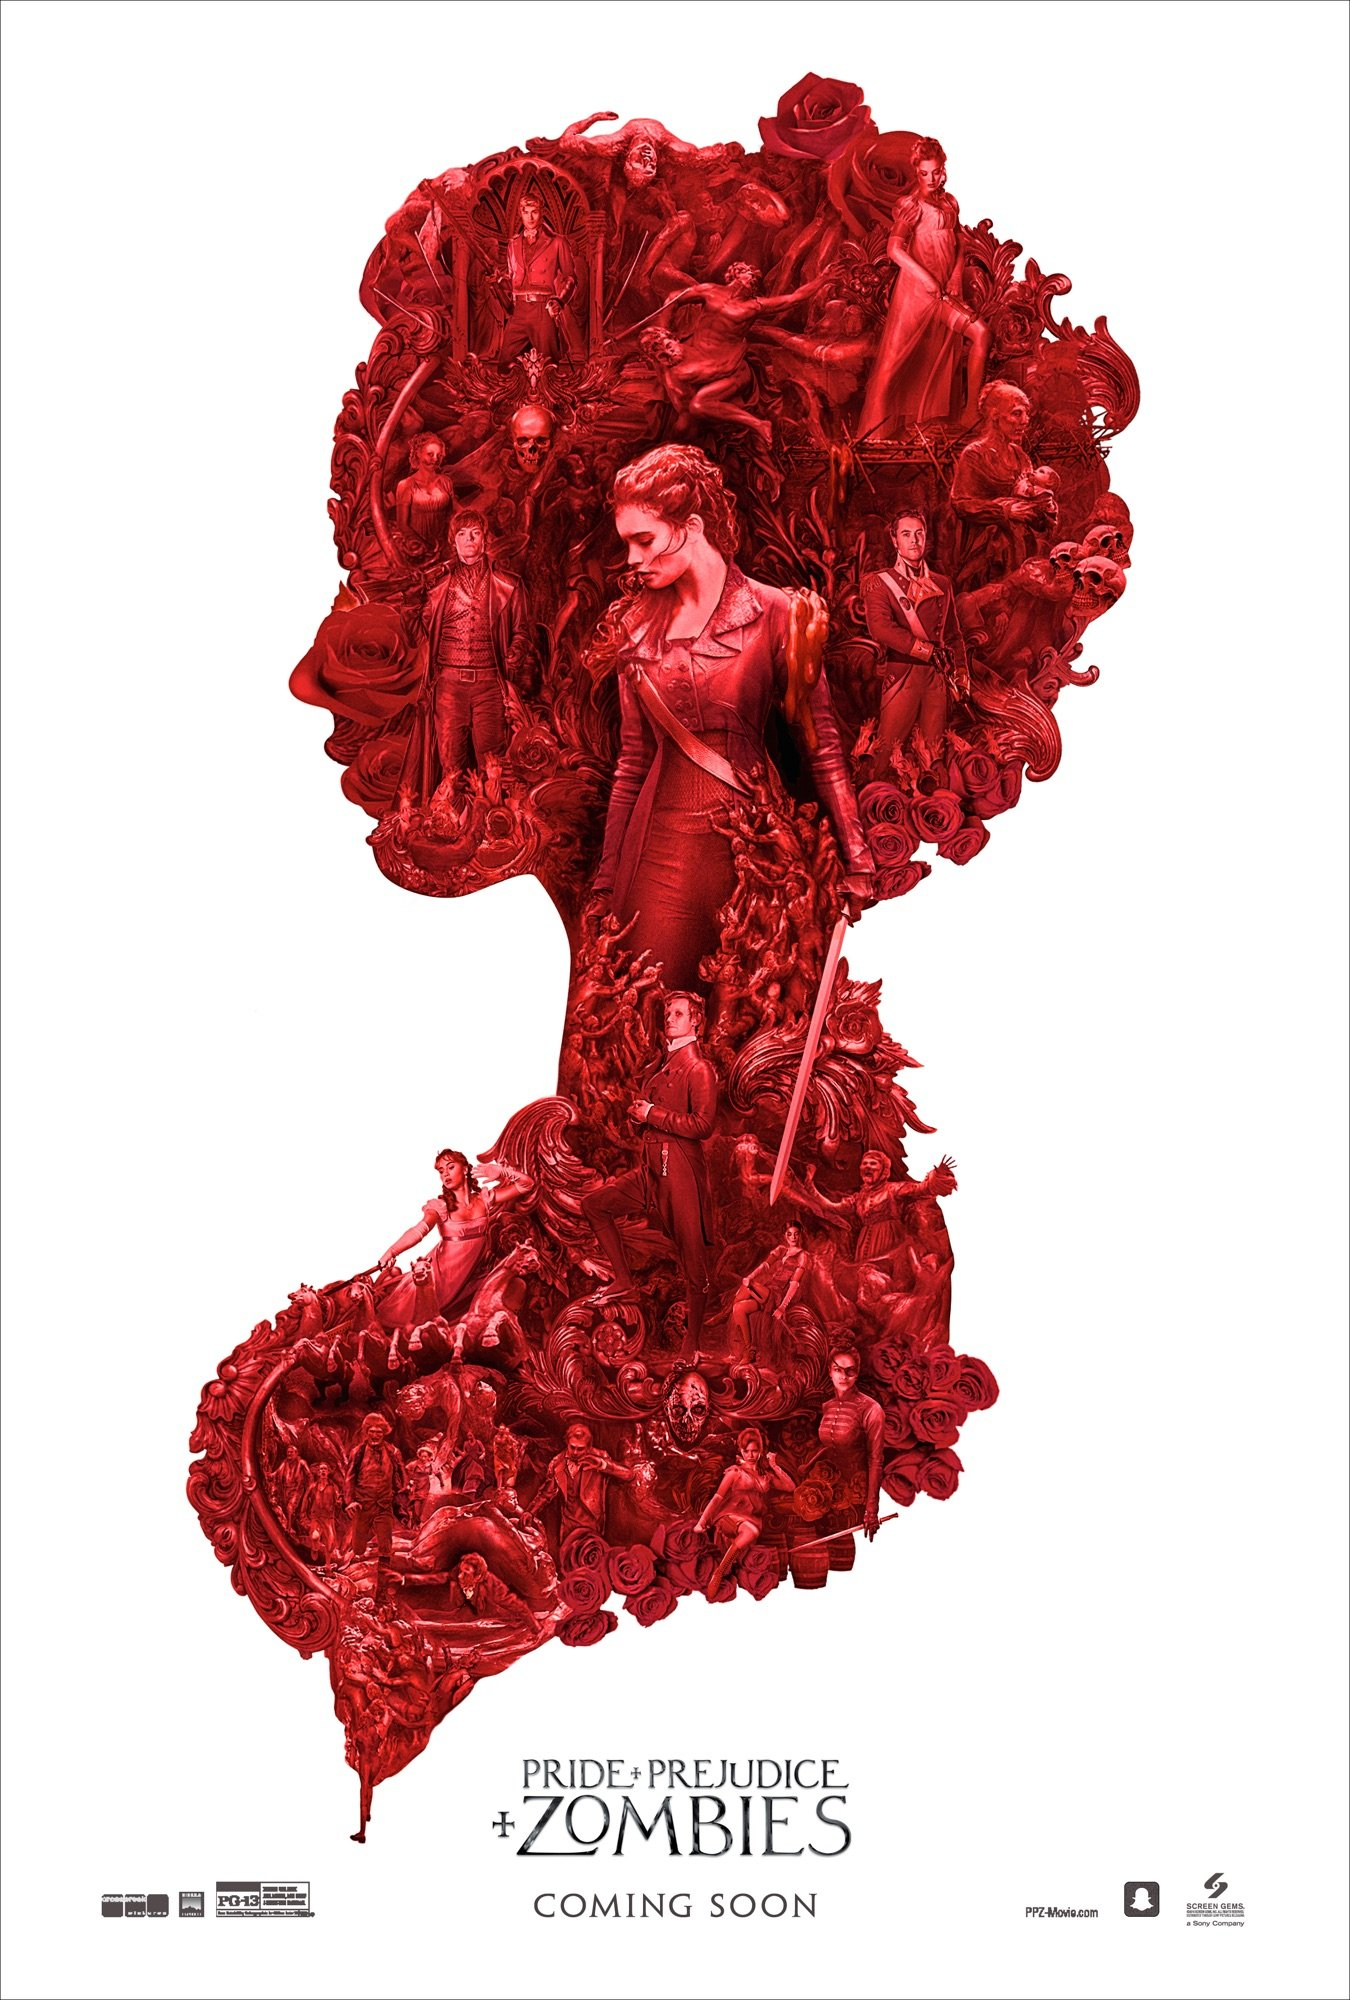 Gothic New Poster For Pride And Prejudice And Zombies Teases A Bloody Apocalypse